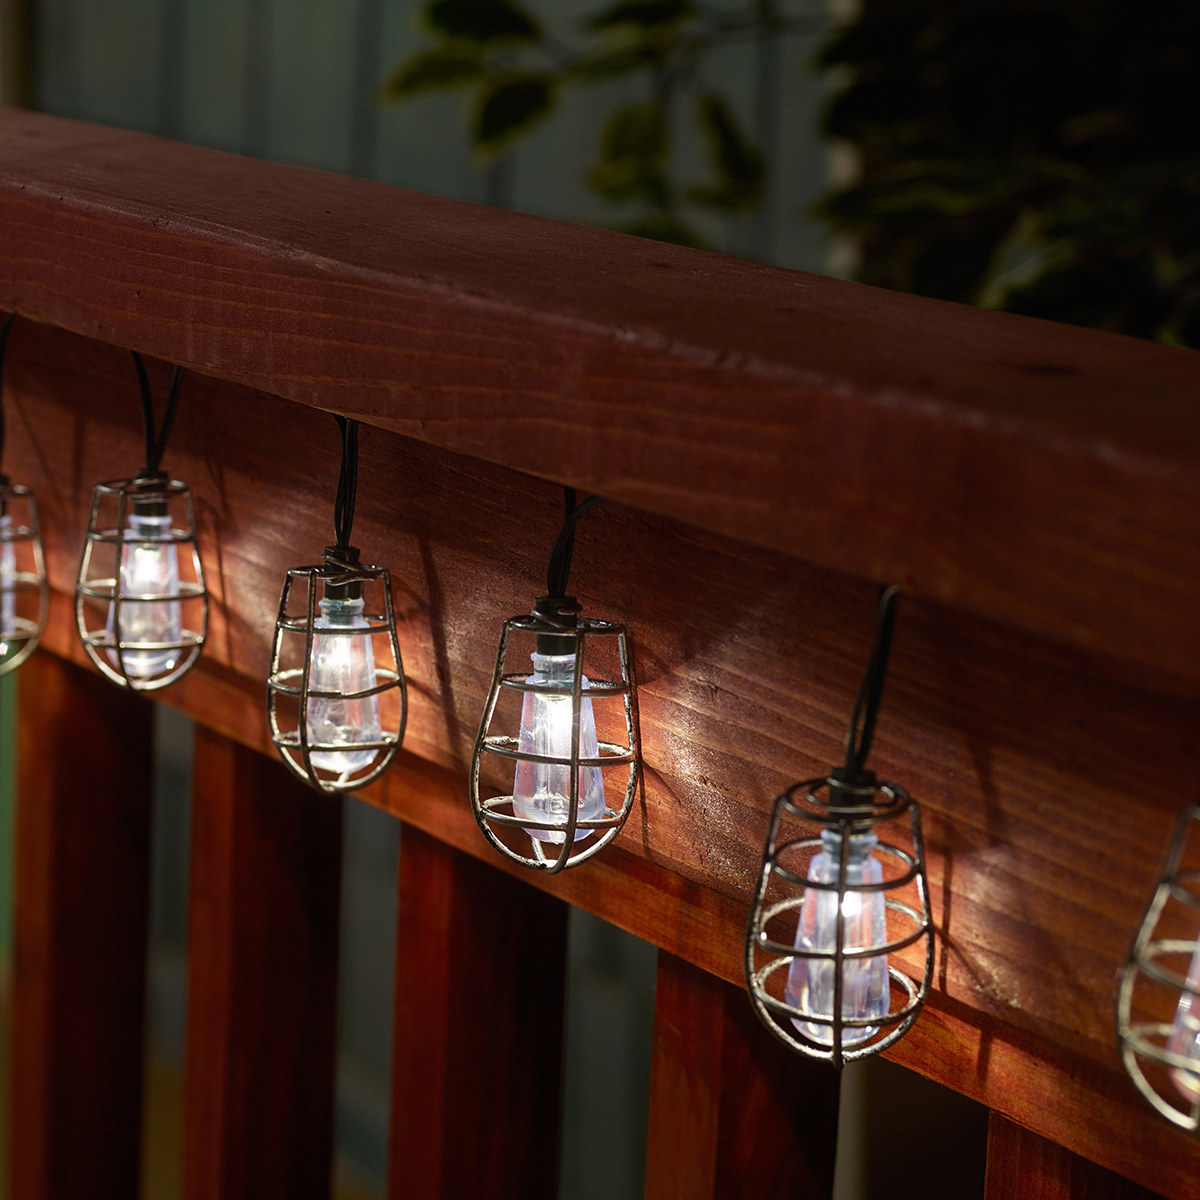 The string lights illuminated on a deck